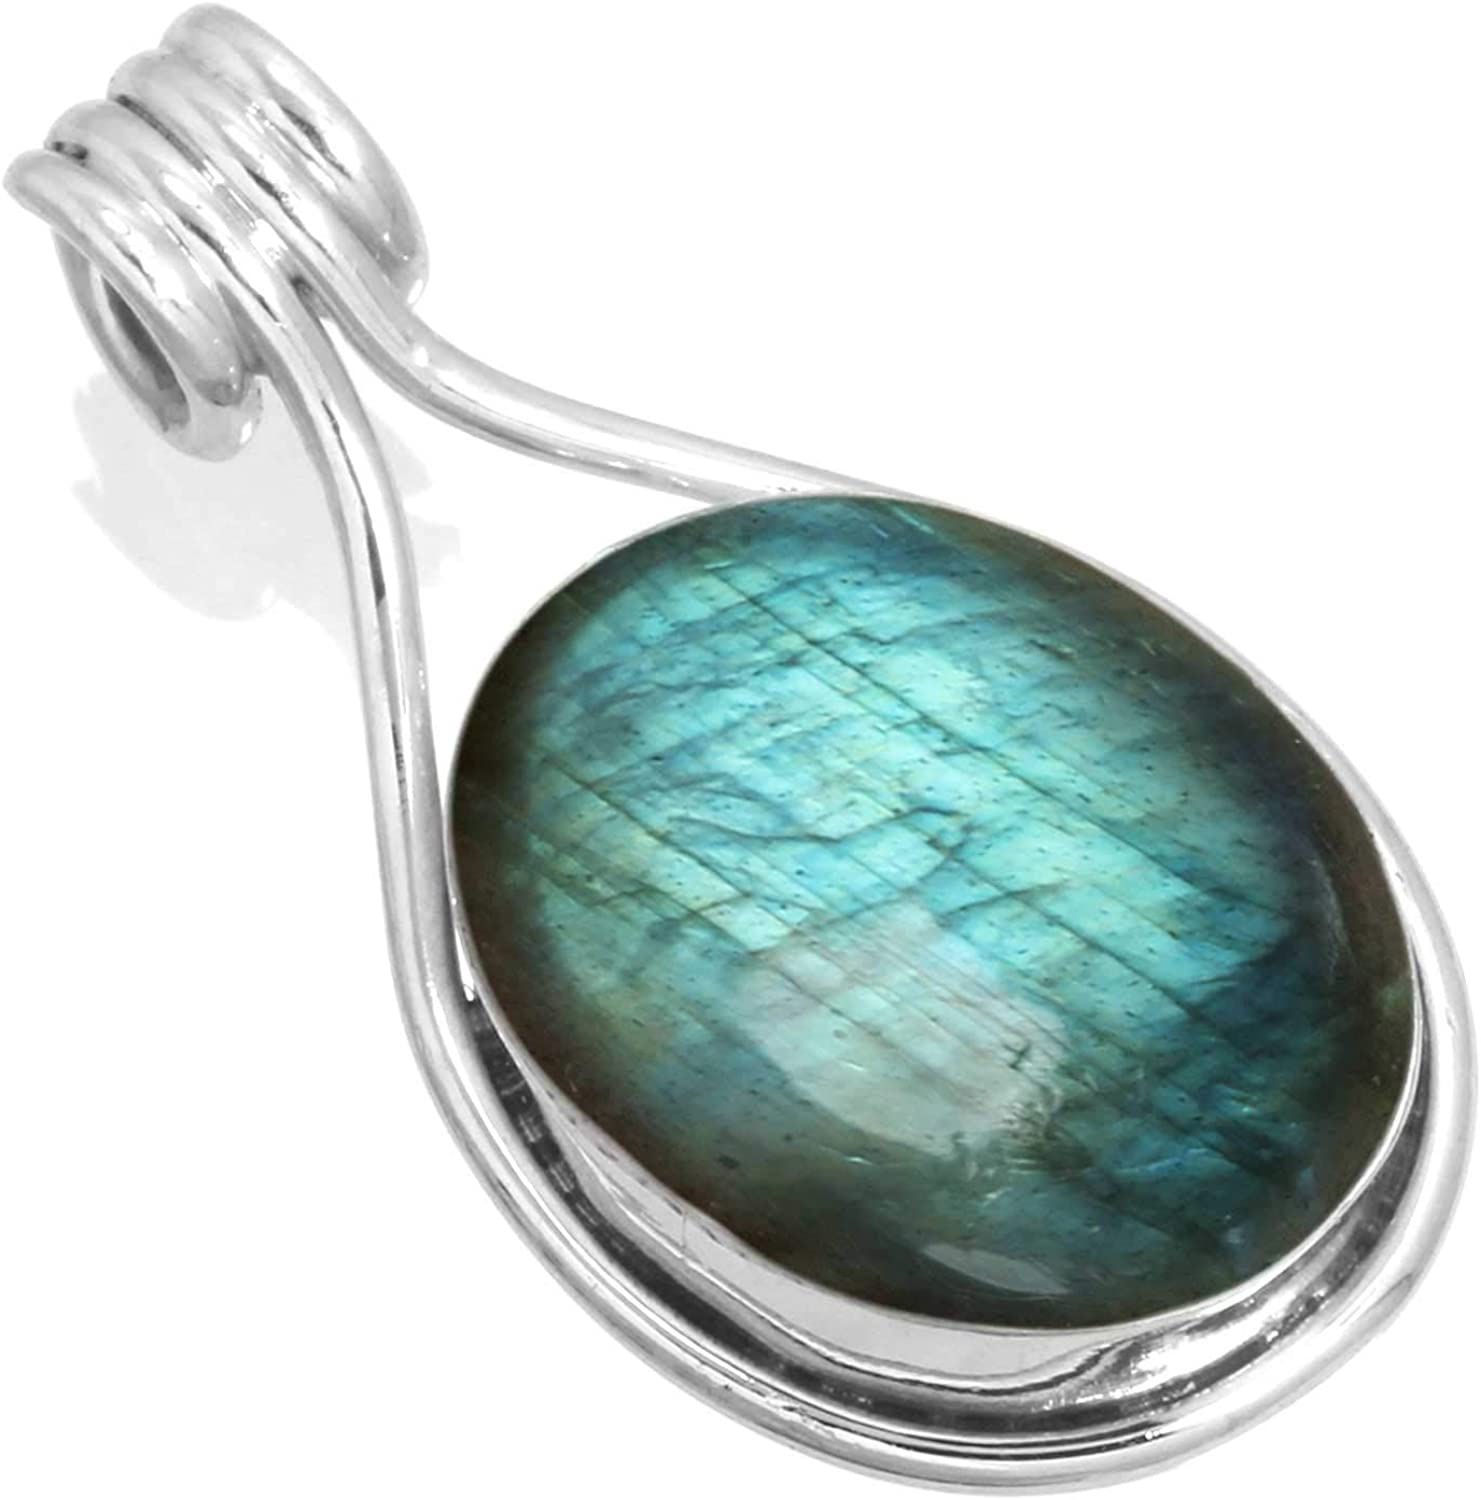 JEWELOPORIUM Solid 925 Sterling Gemstone Silver Handmade Pendant Super sale period limited Beauty products